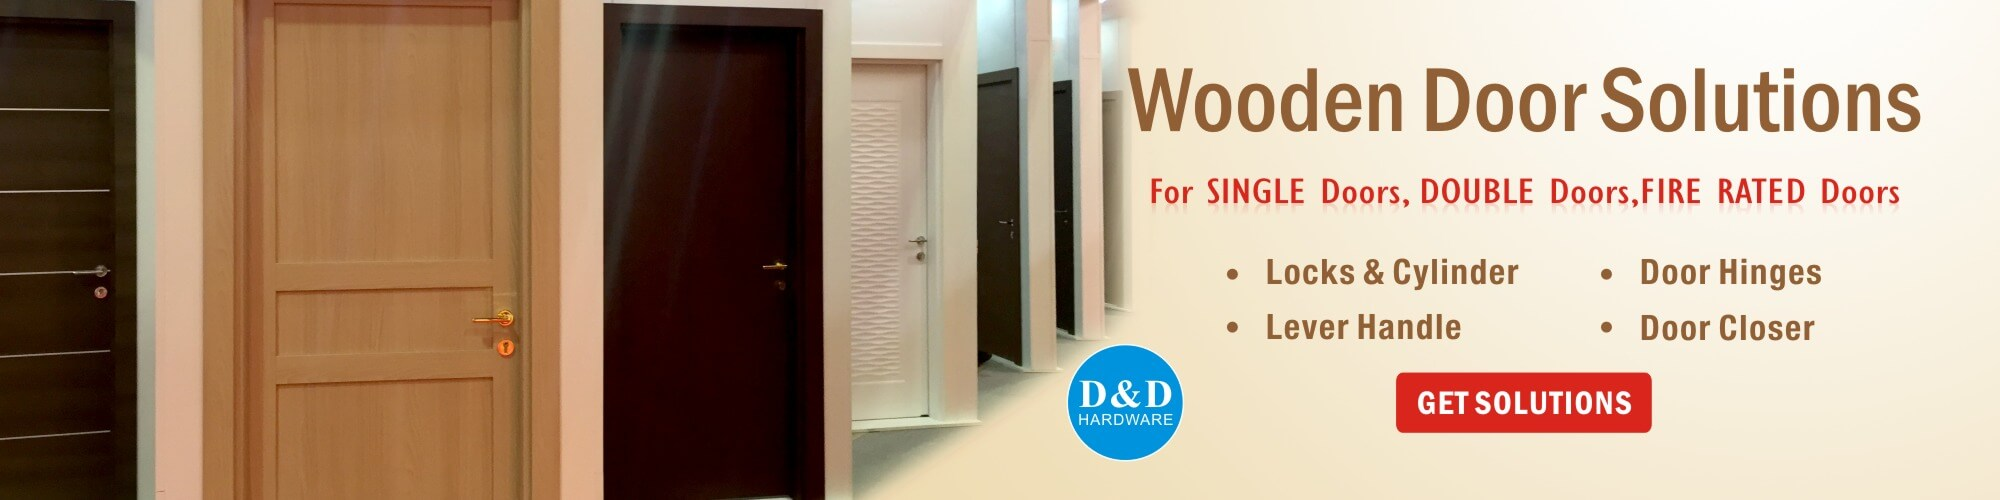 Wooden-Door solution